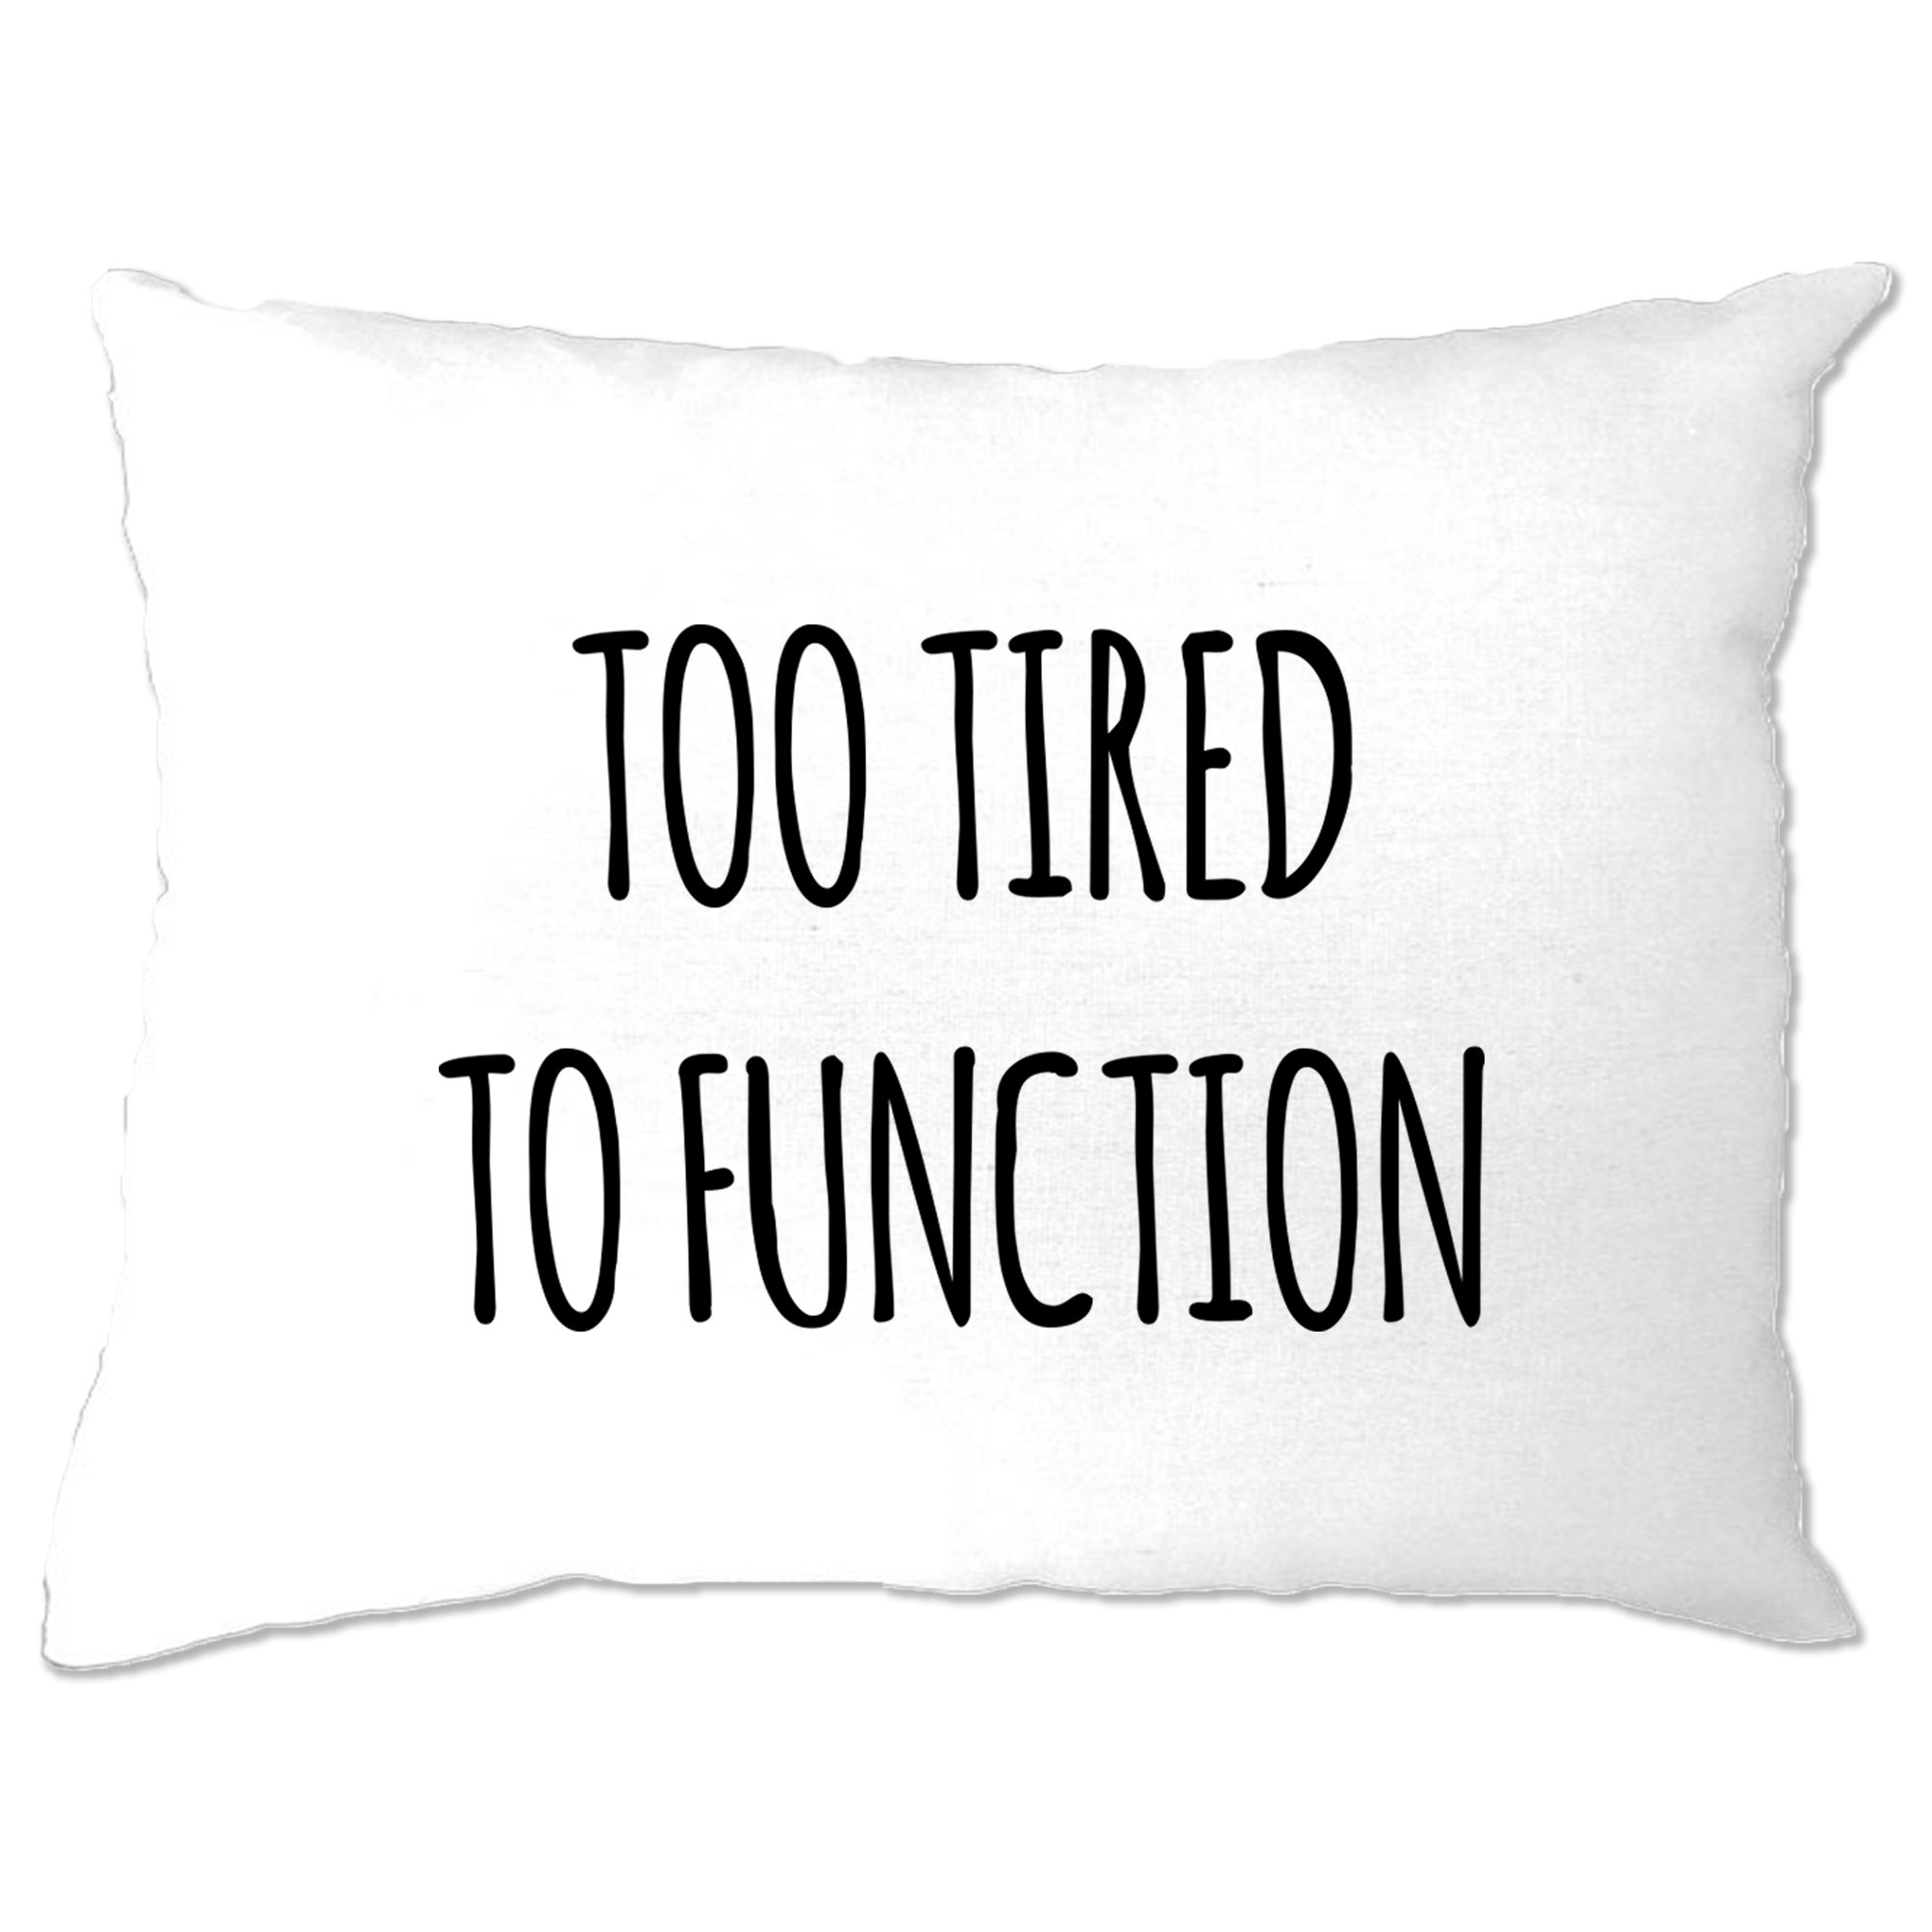 Tim And Ted Funny Pillow Case Too Tired to Function Slogan White One Size